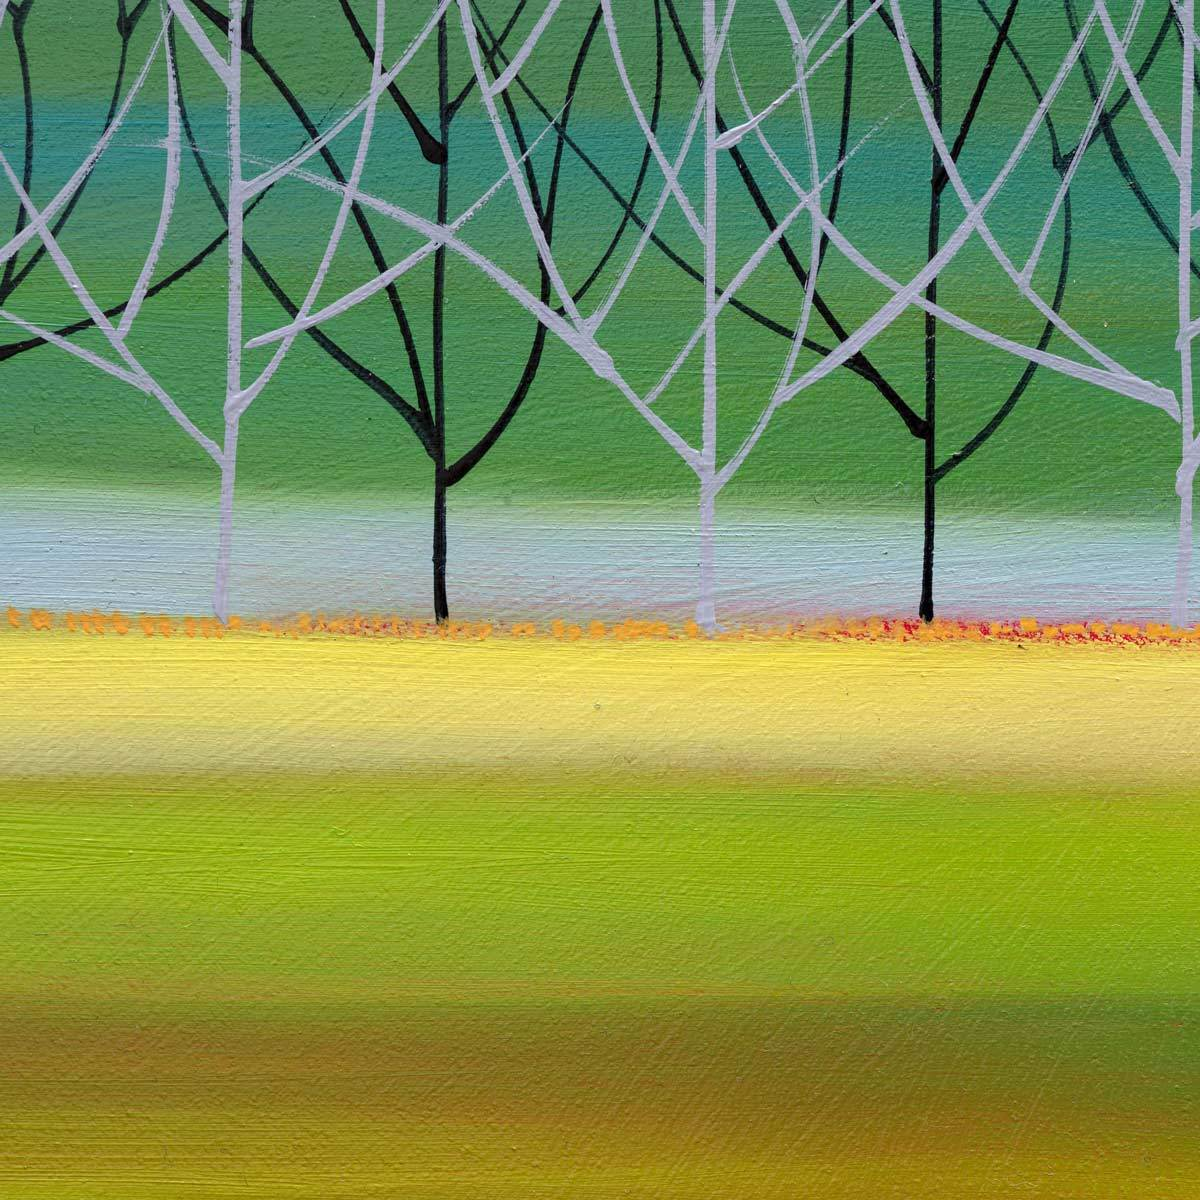 Tranquil Trees - Original Mary Johnston Original